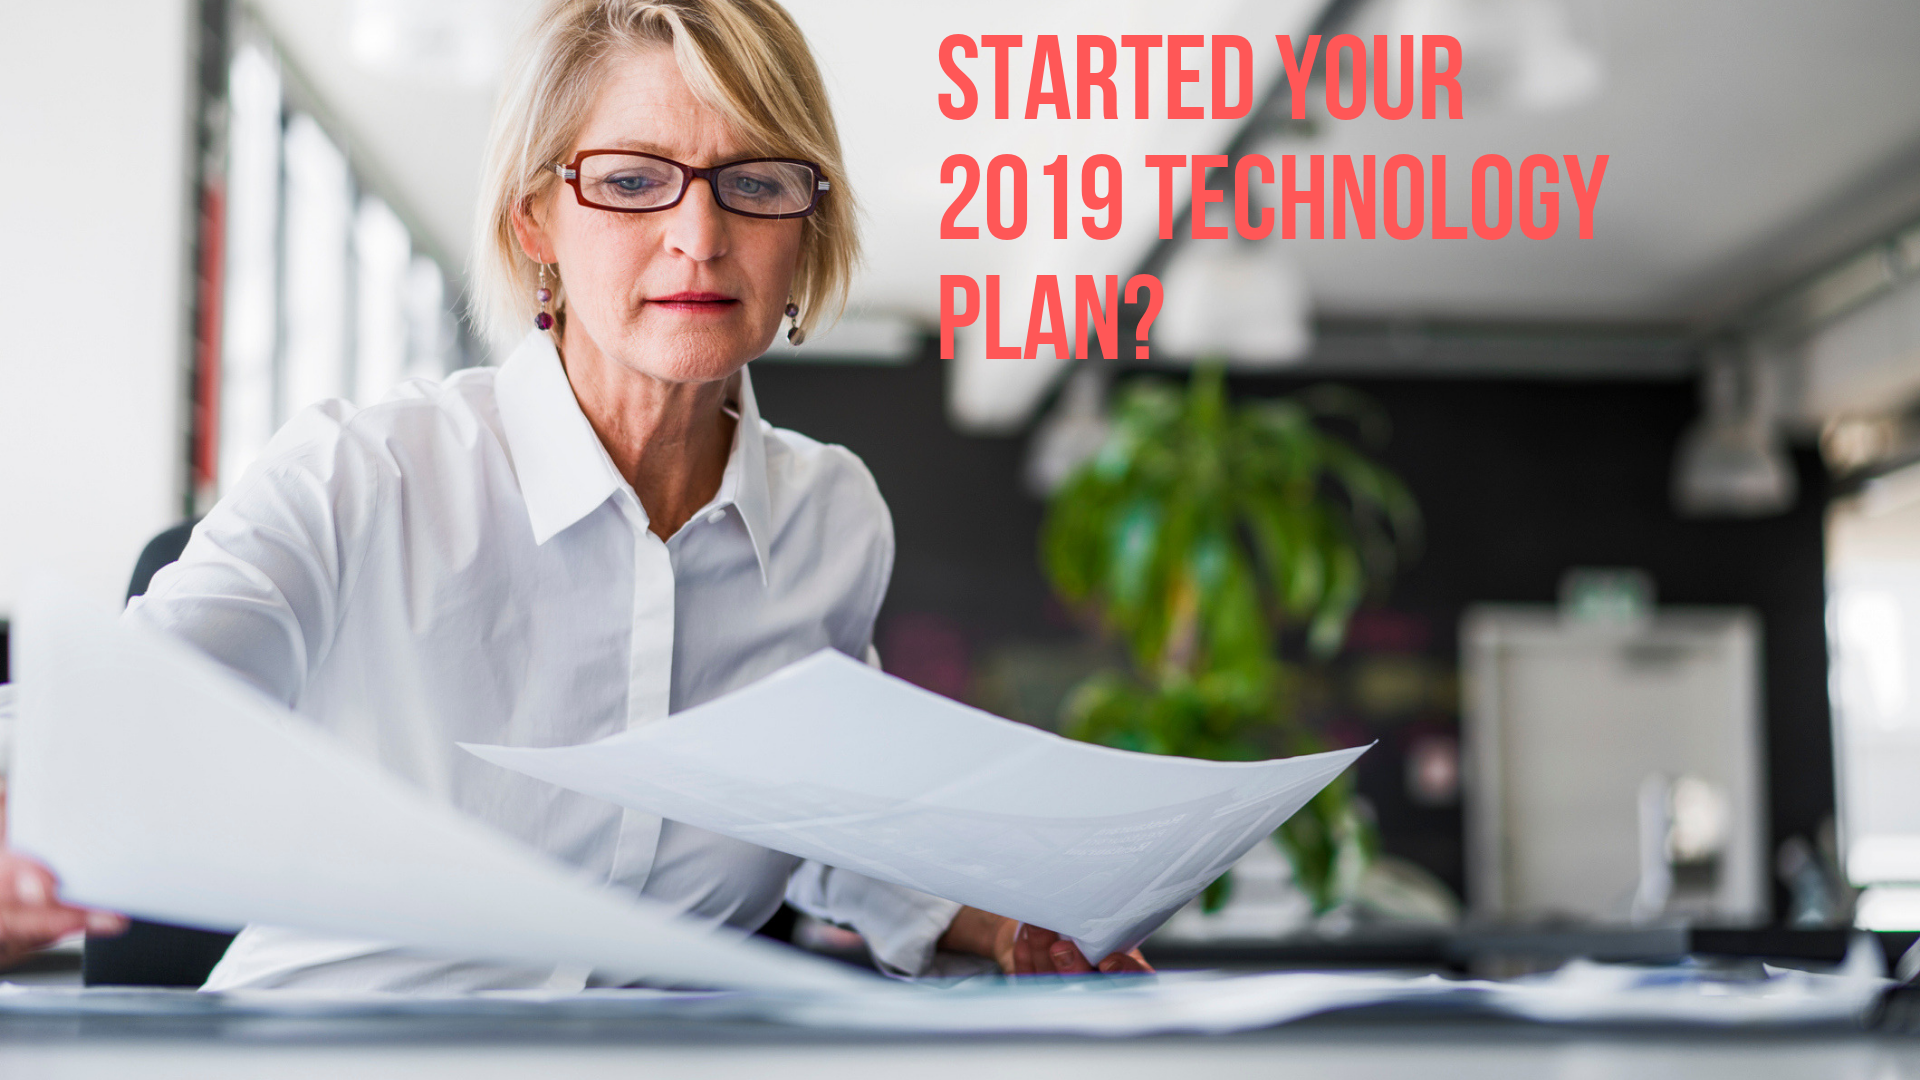 2019 Technology Plan